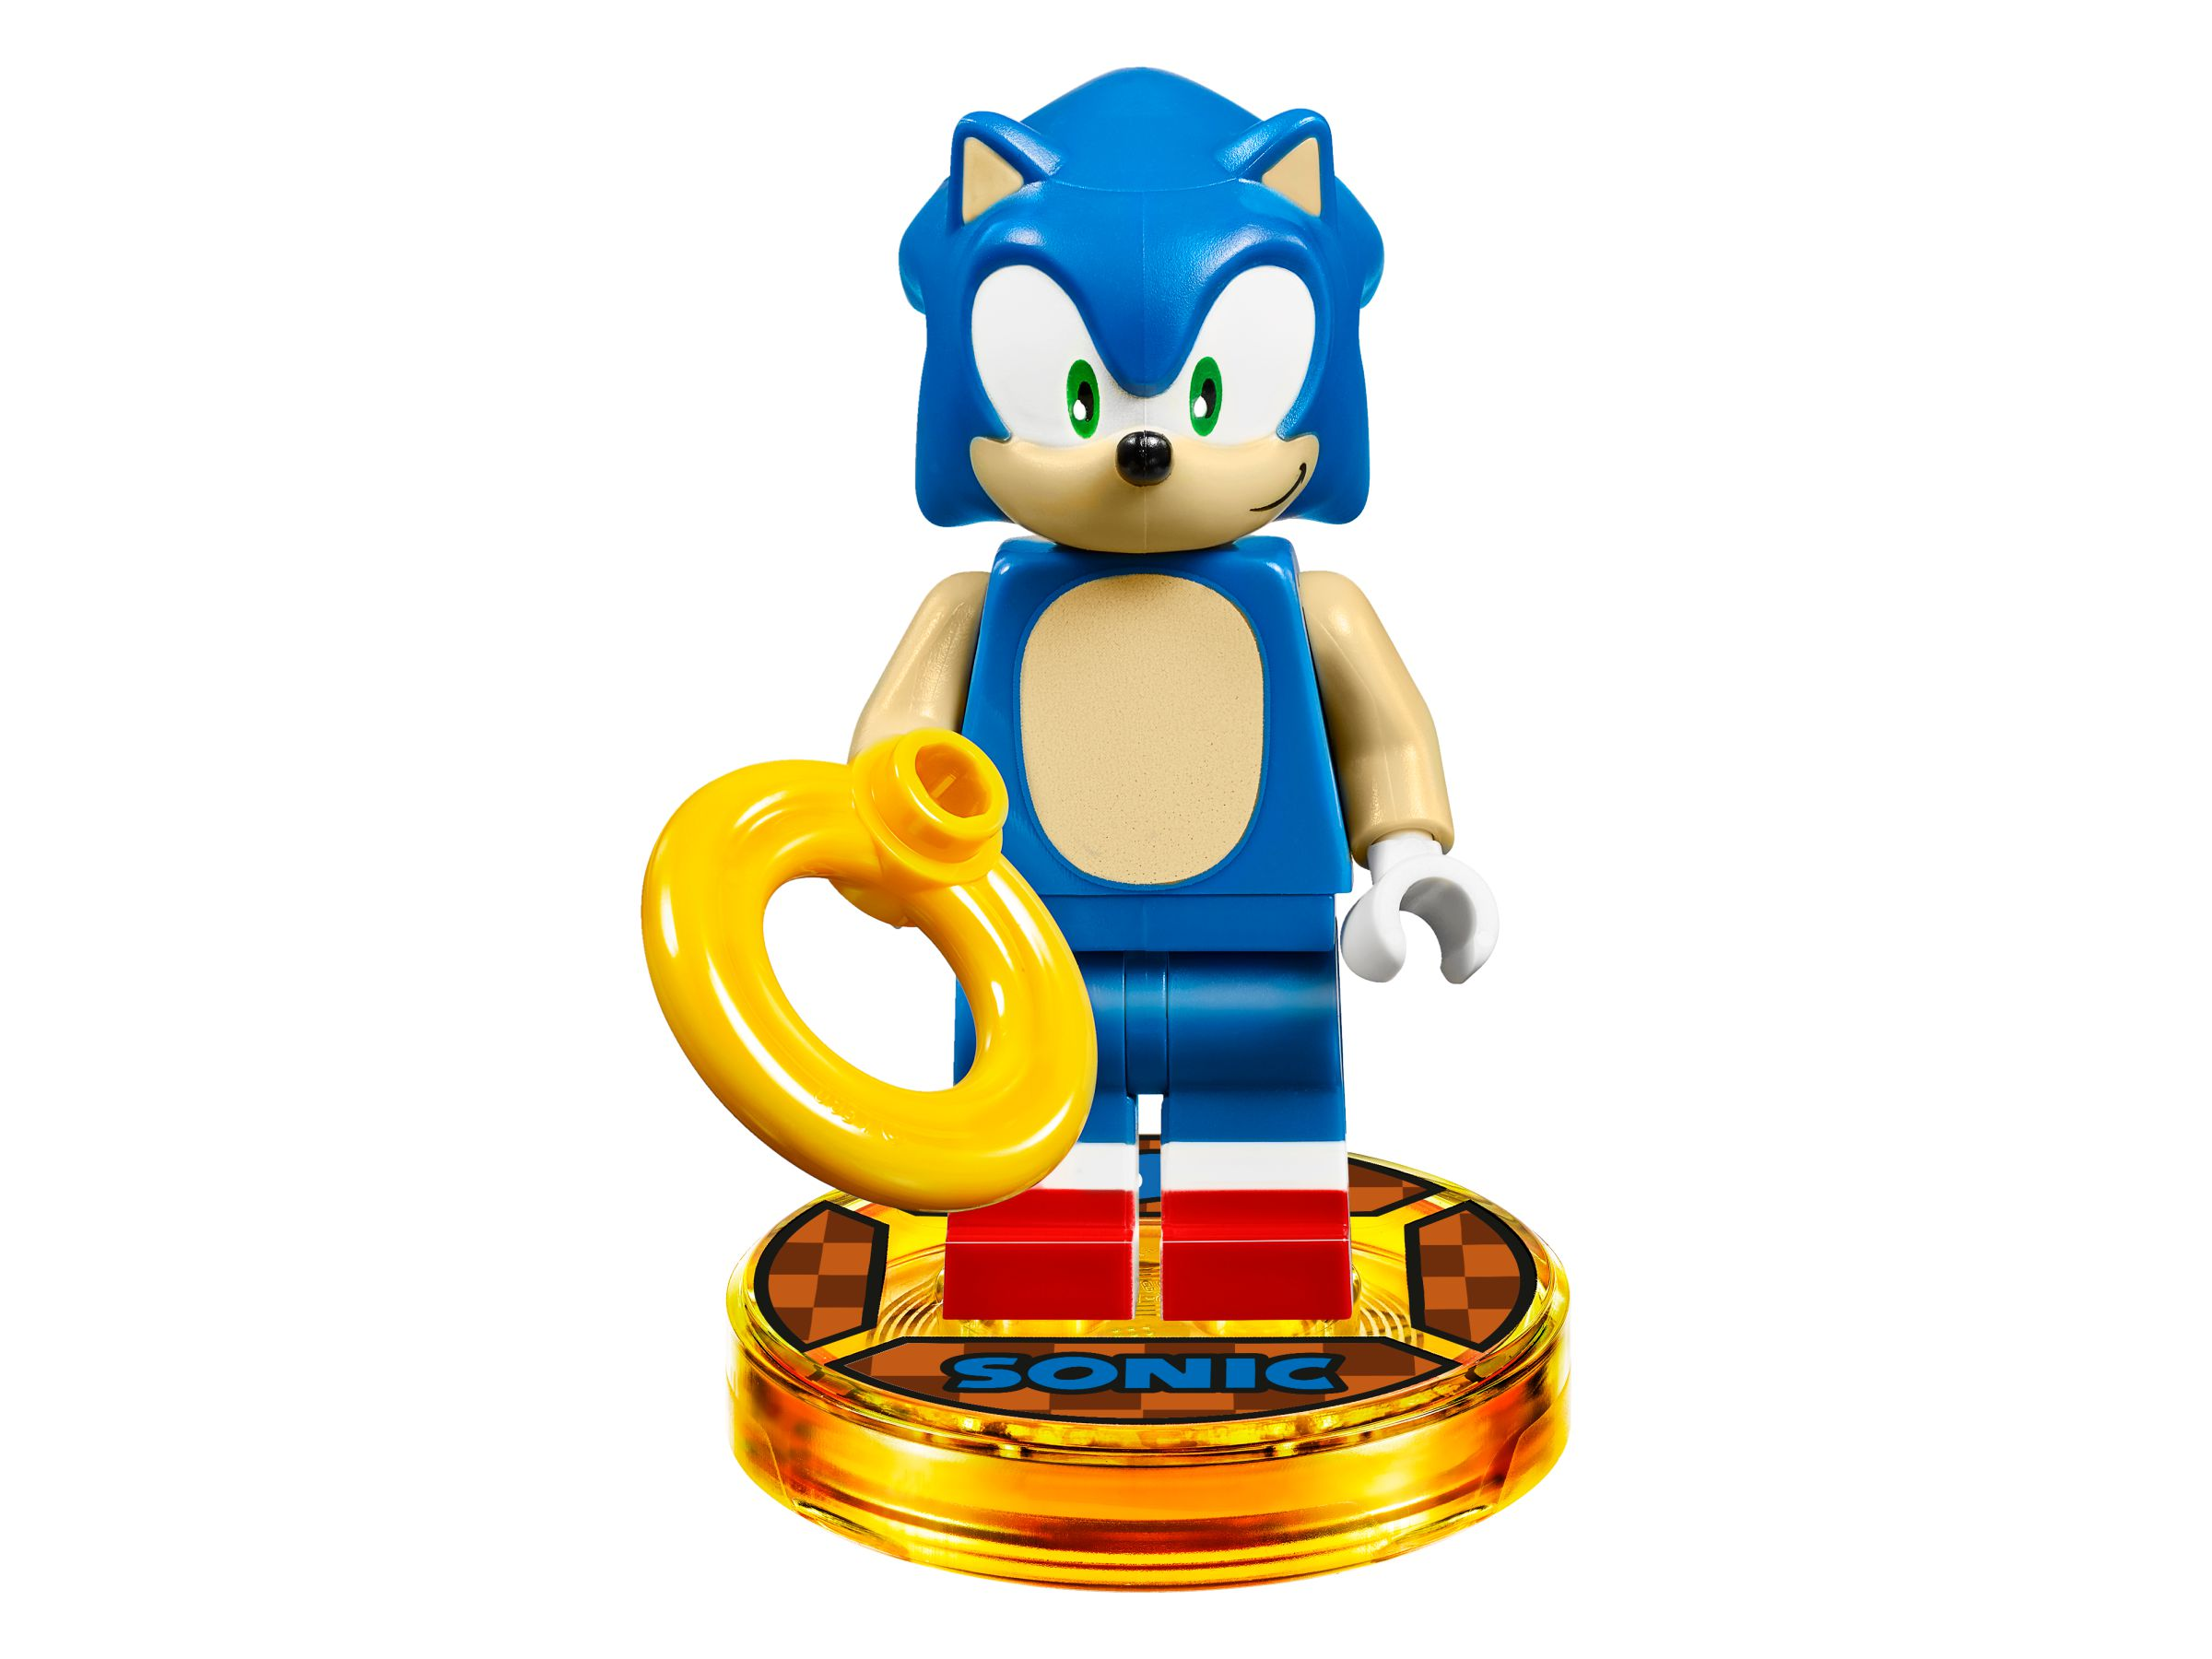 LEGO Dimensions 71244 Level Pack Sonic the Hedgehog LEGO_71244_alt2.jpg